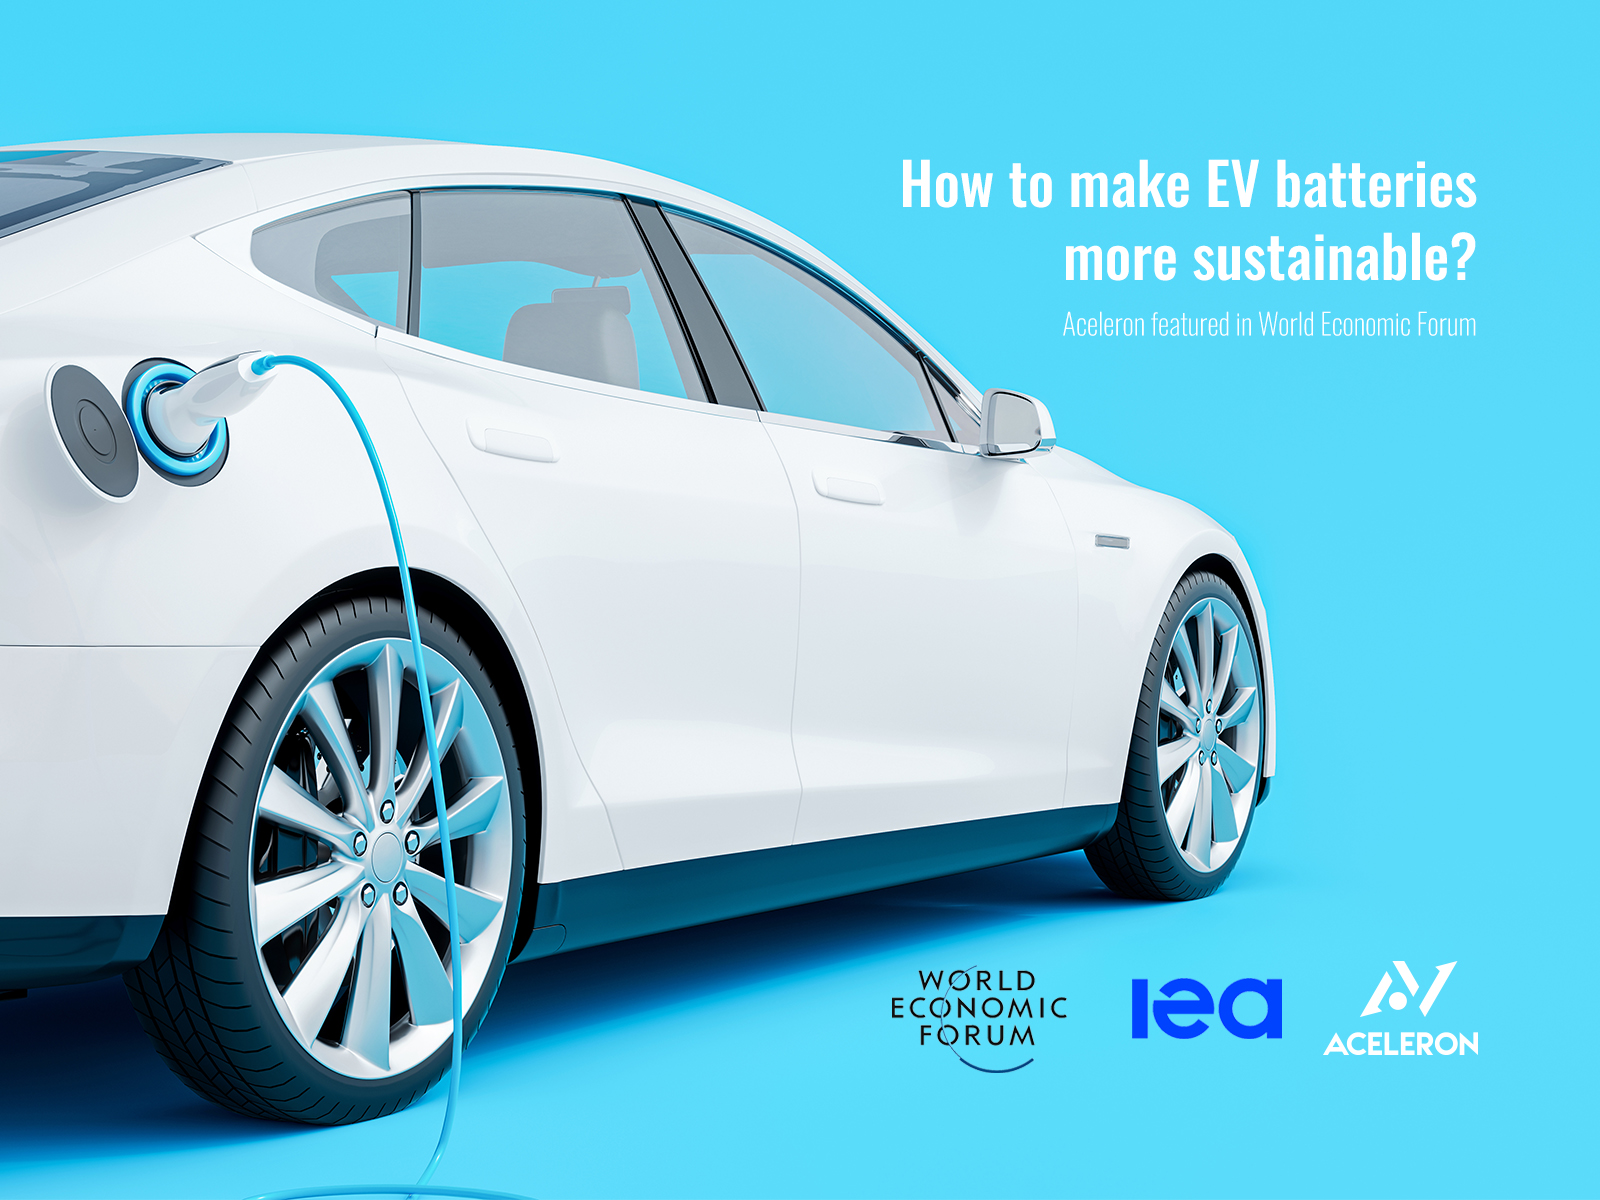 World Economic Forum feature Aceleron as one of five innovators making the electric vehicle battery more sustainable.